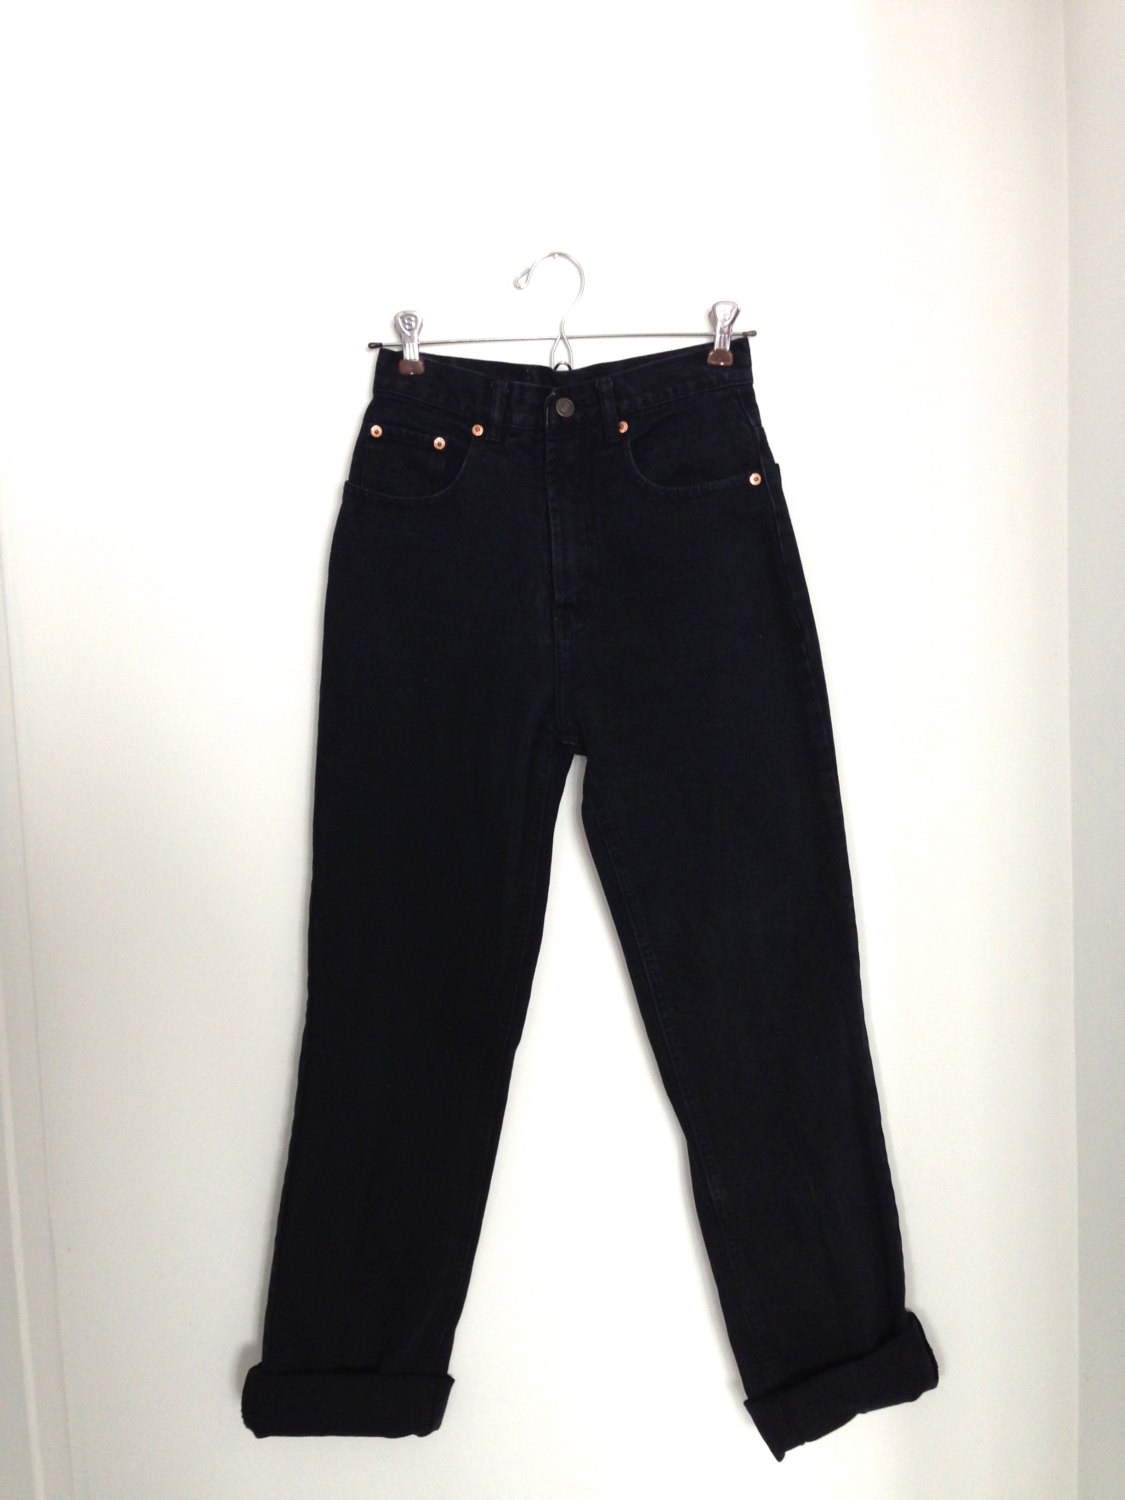 best sell hot sale luxury Vintage Levi's 501 High-Waisted Jeans / Straight Leg / Vtg Black Boyfriend  Jeans / Waist 27 / 1990s